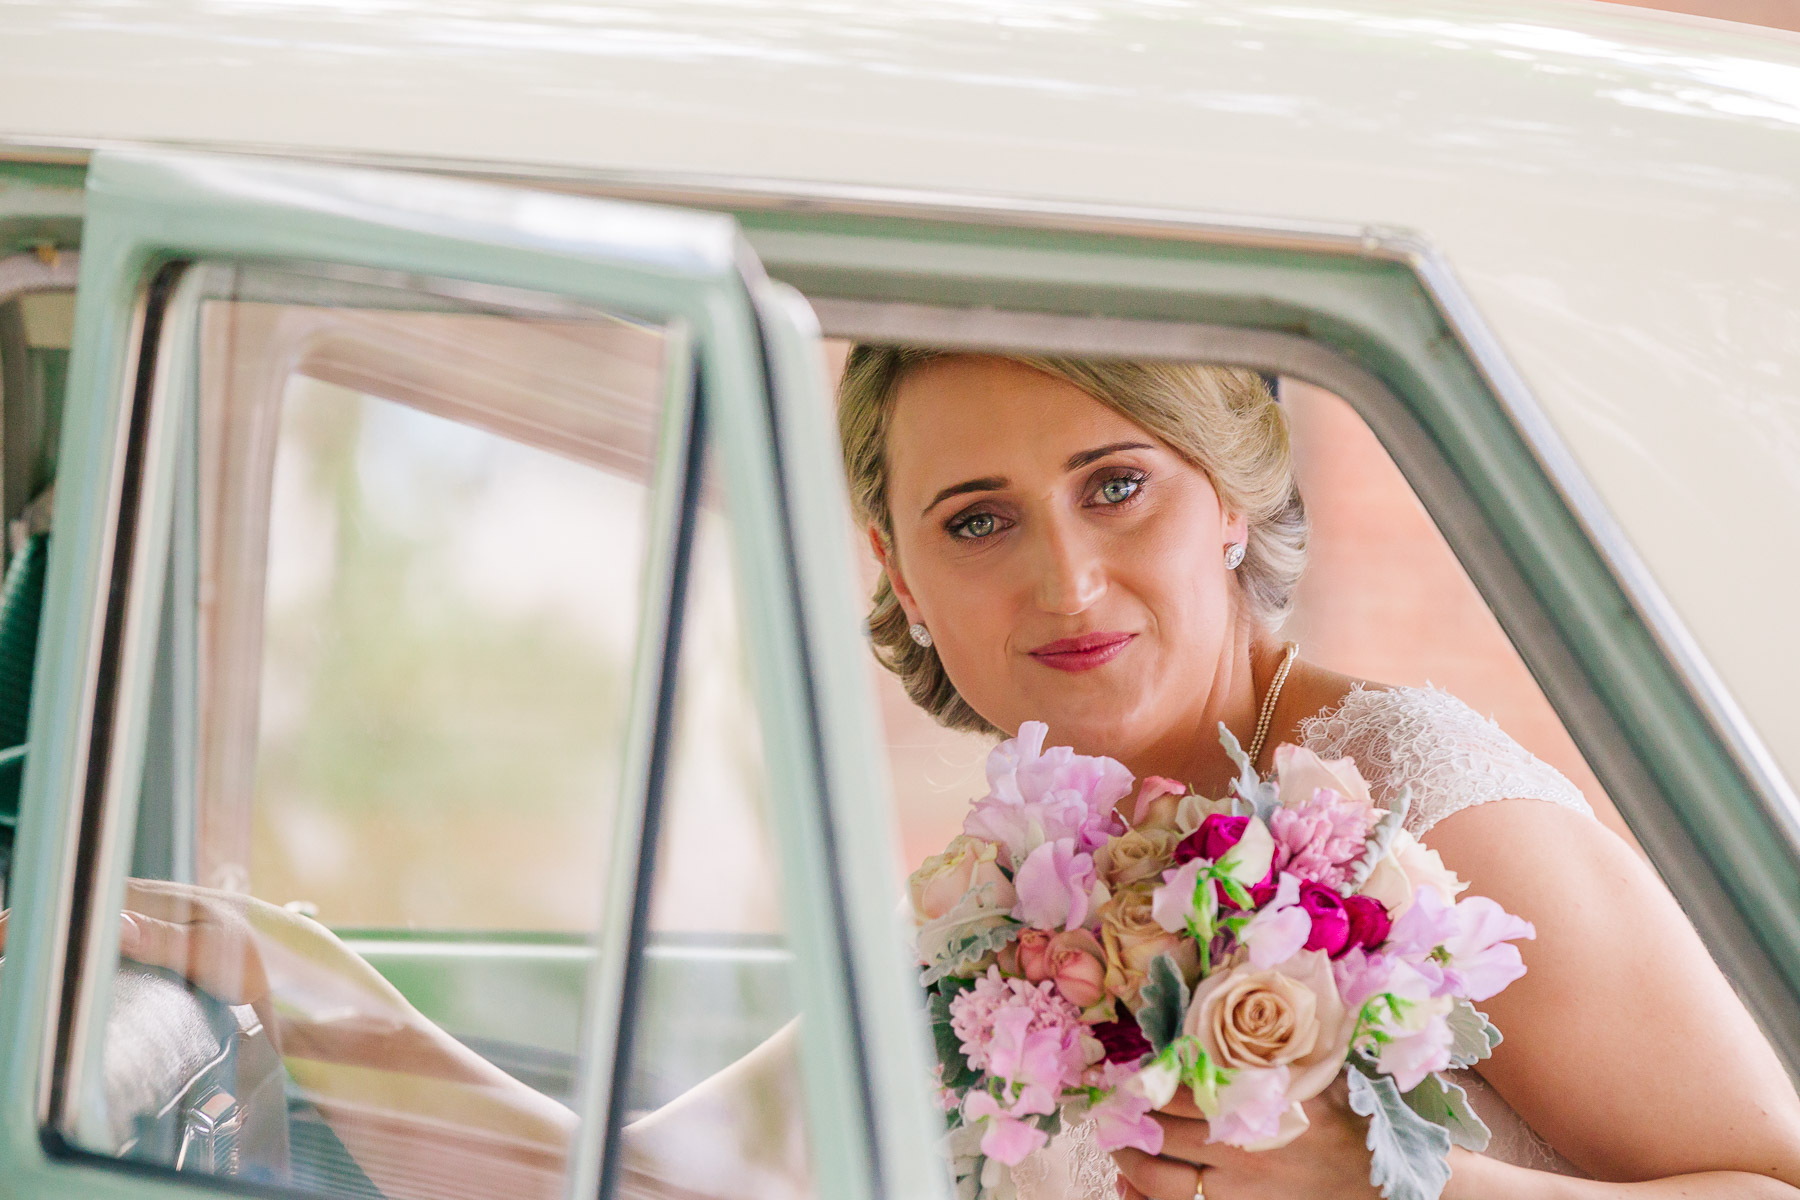 Justin_and_Jim_Best_Of_Wedding_Photography-7.jpg